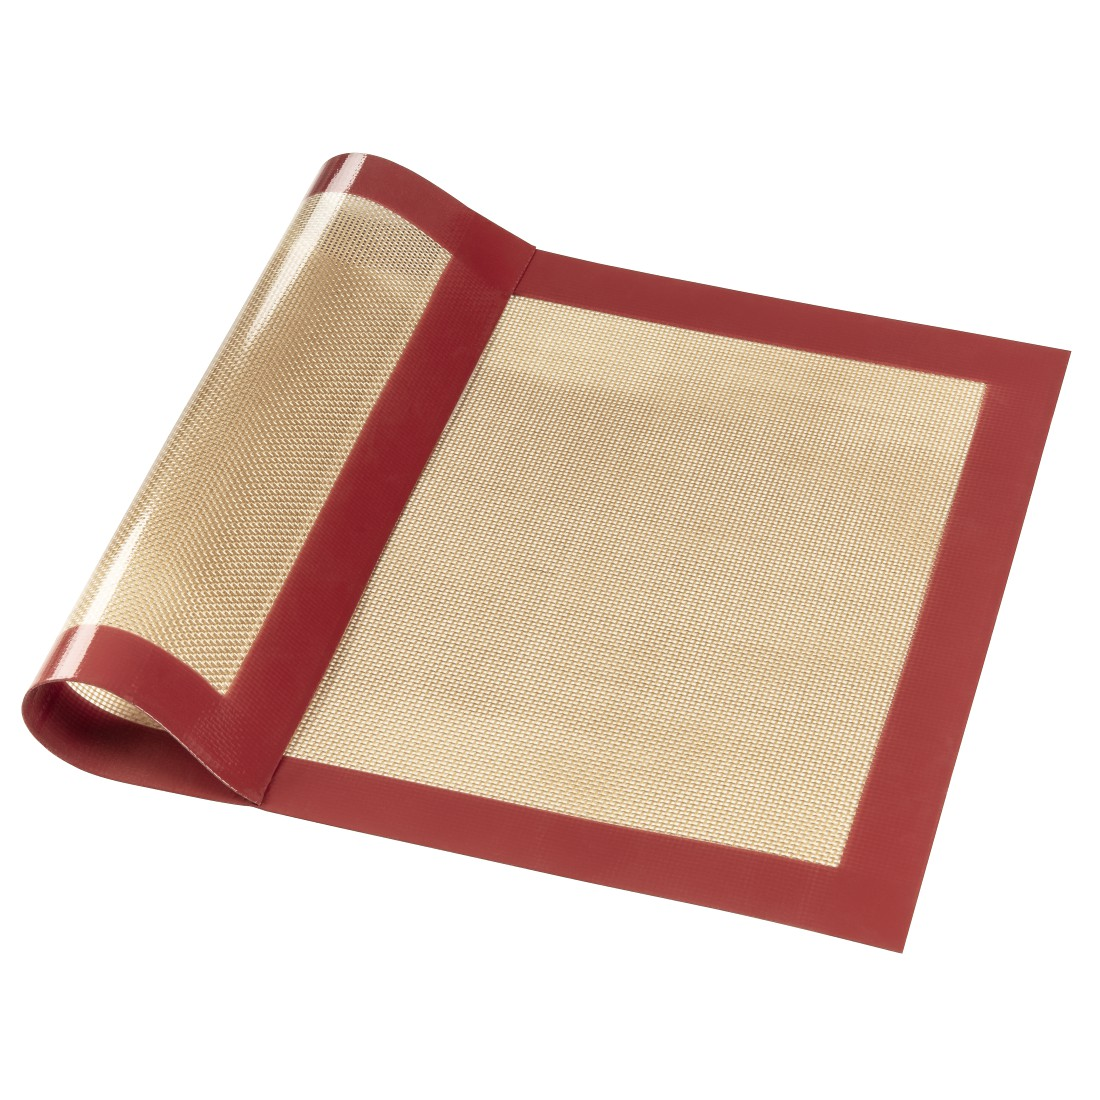 abx High-Res Image - Xavax, Silicon Baking Mat, Square, 40 x 30 cm, red-brown